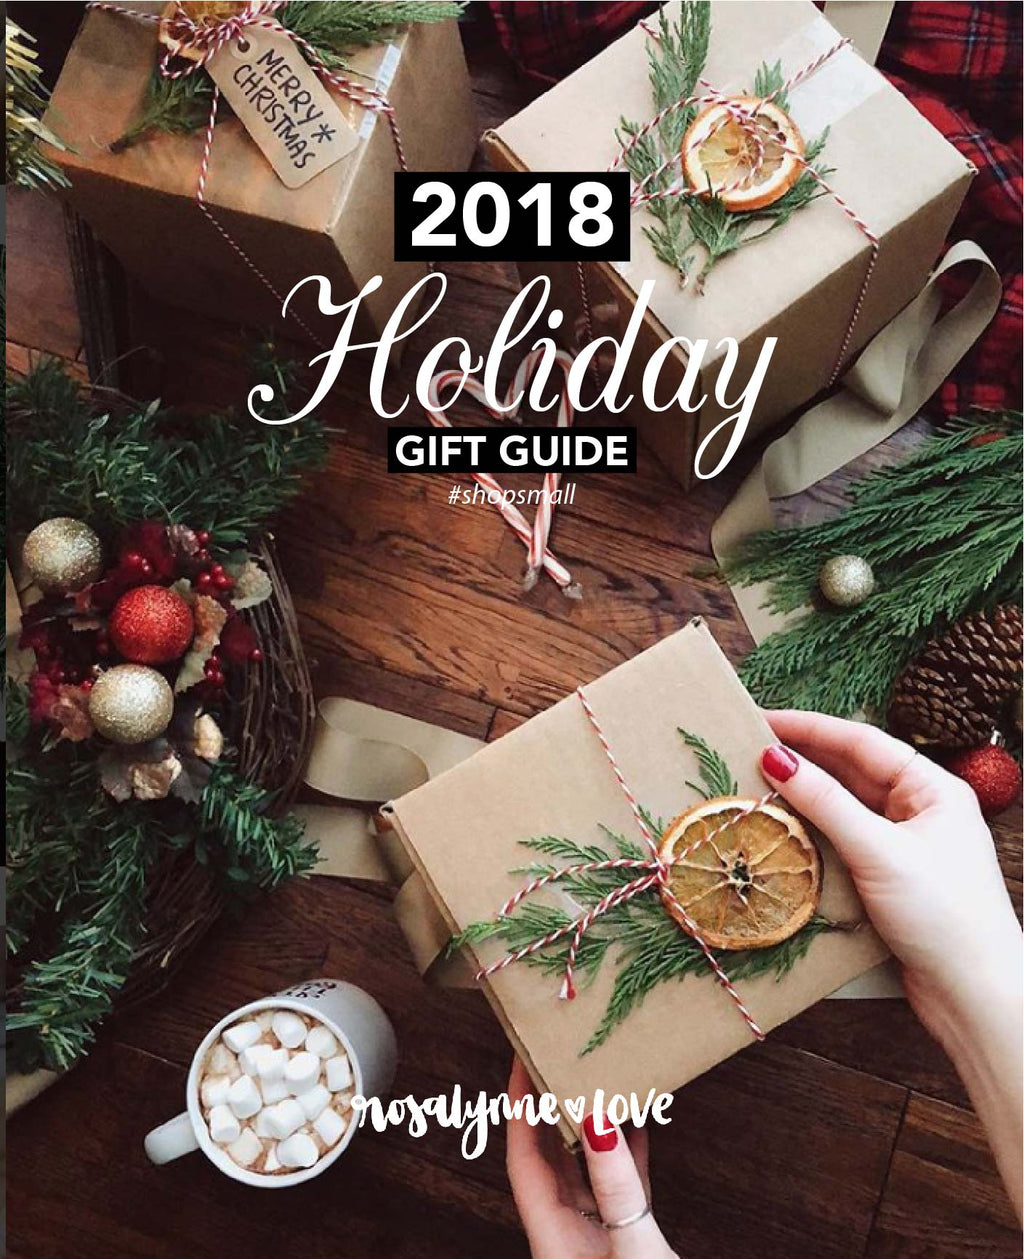 Submissions Are Open: Holiday Gift Guide 2018